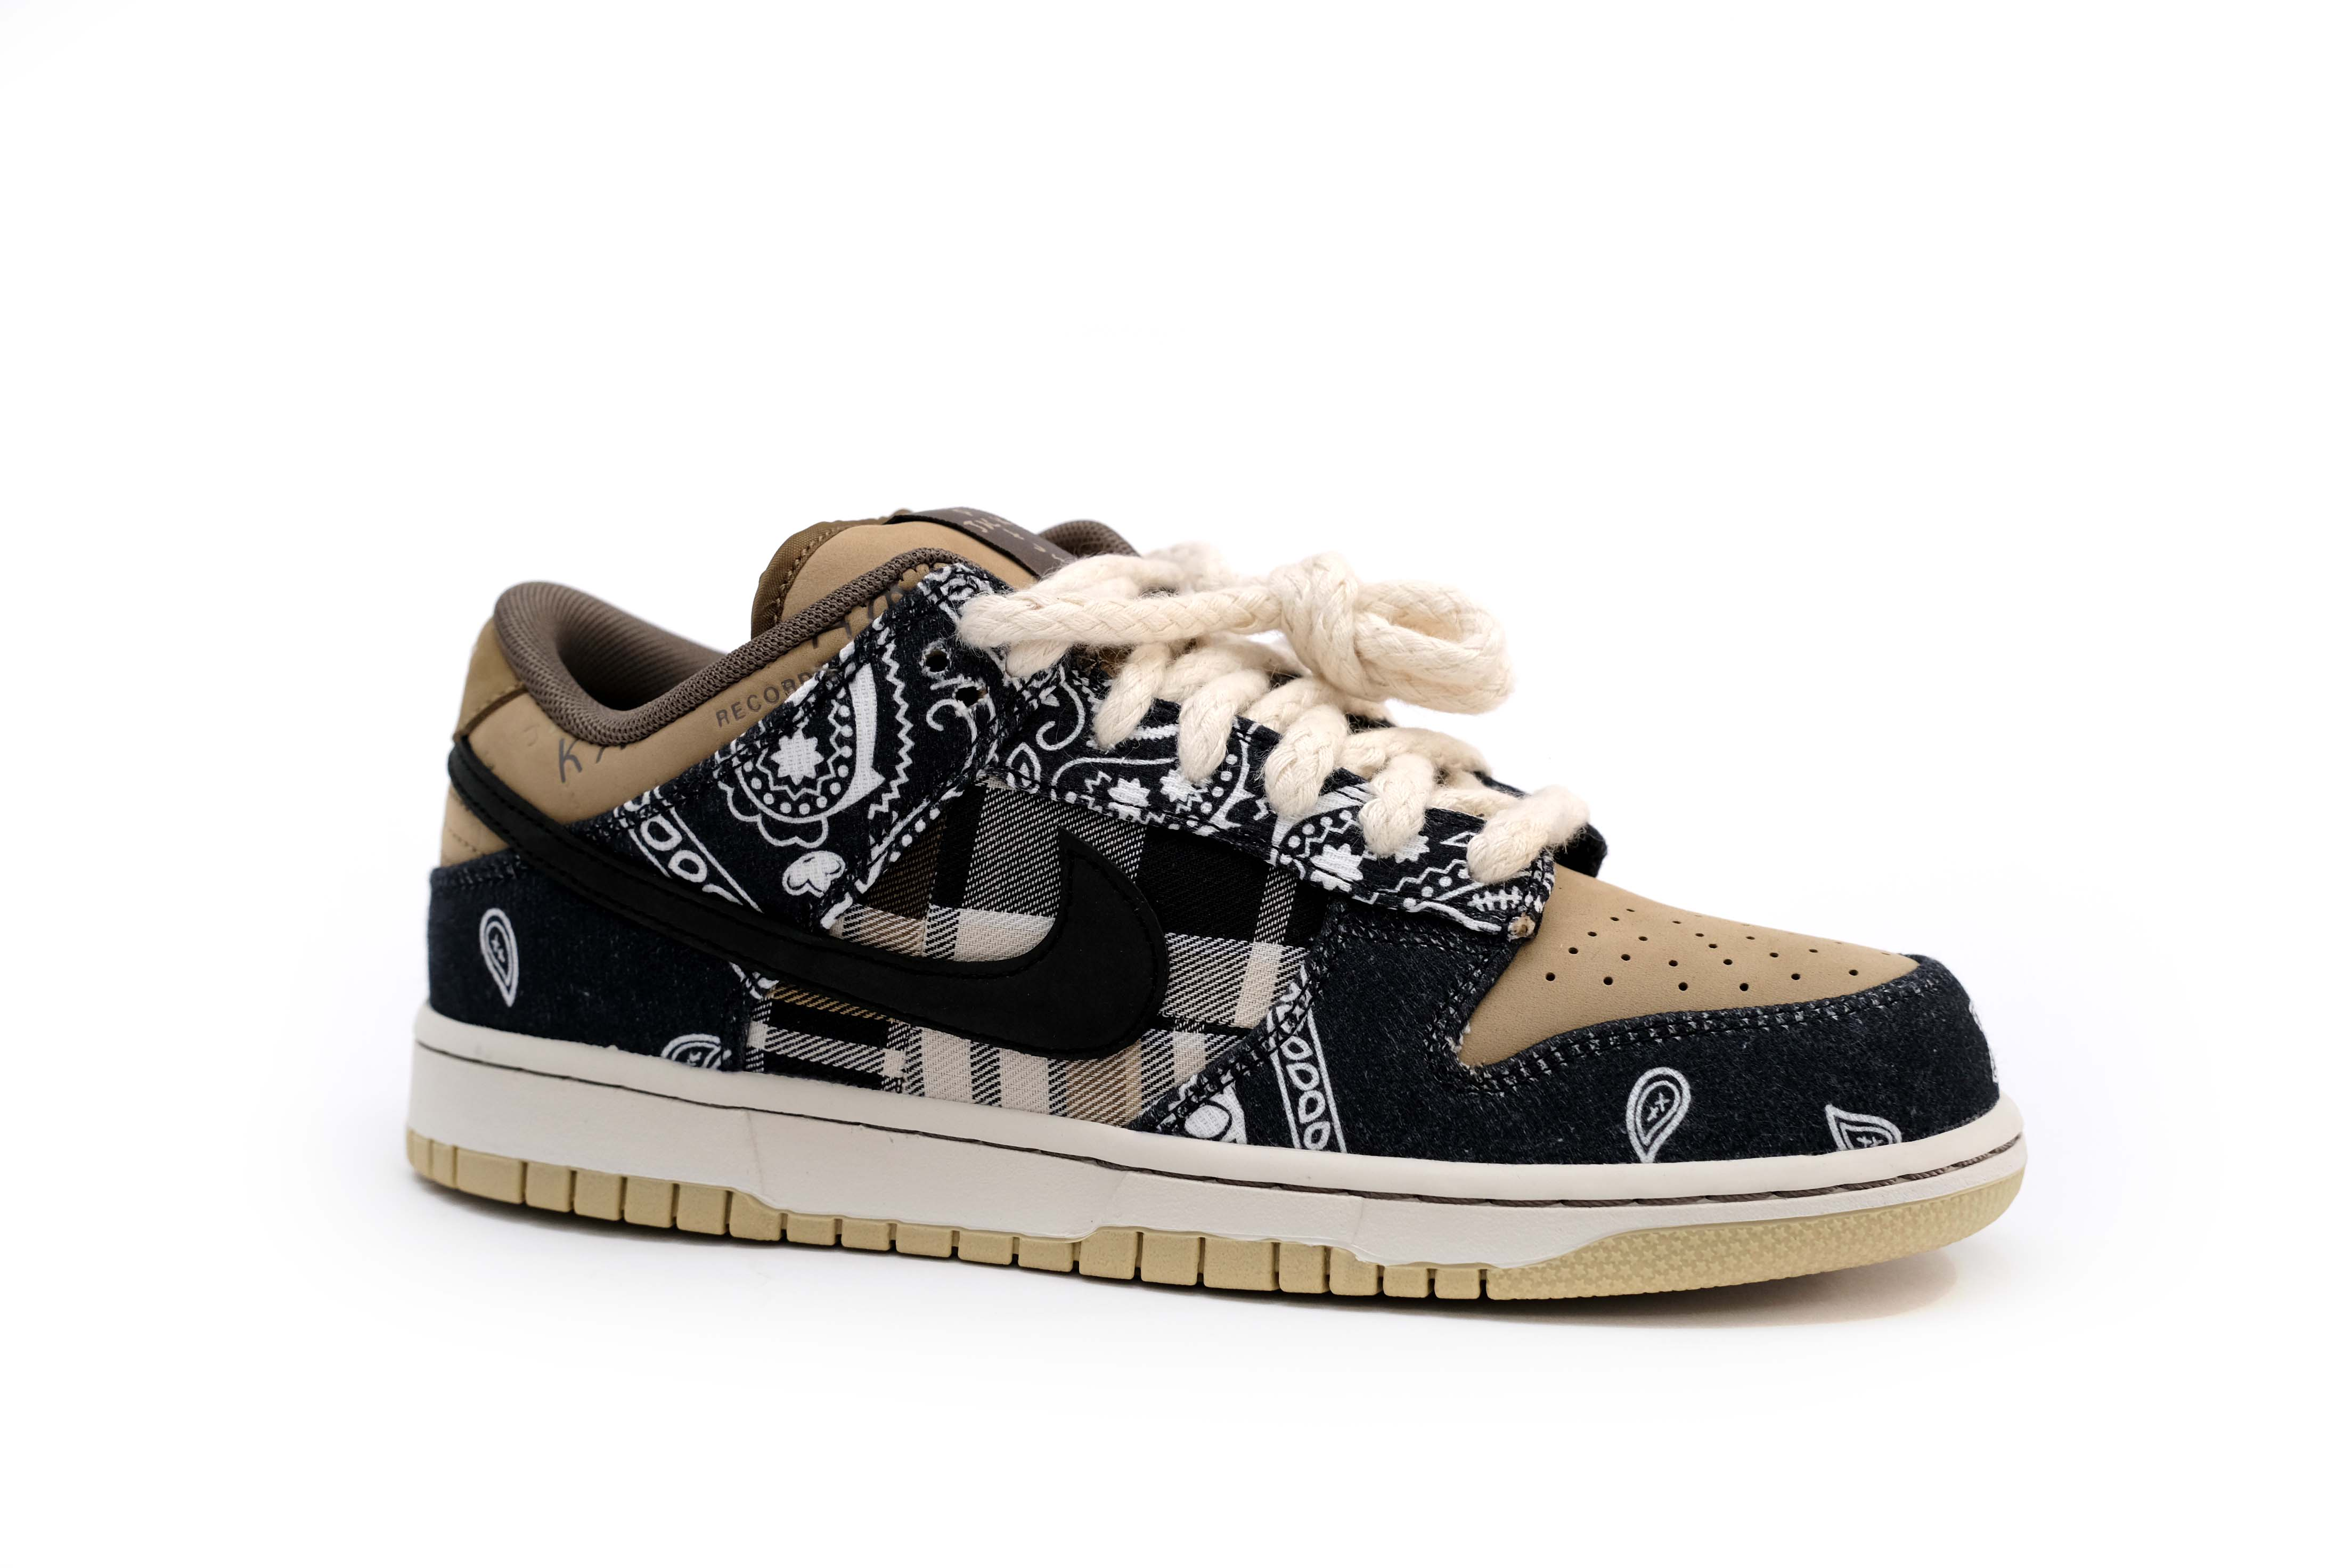 travis-scott-x-dunk-low-sb-cactus-jack